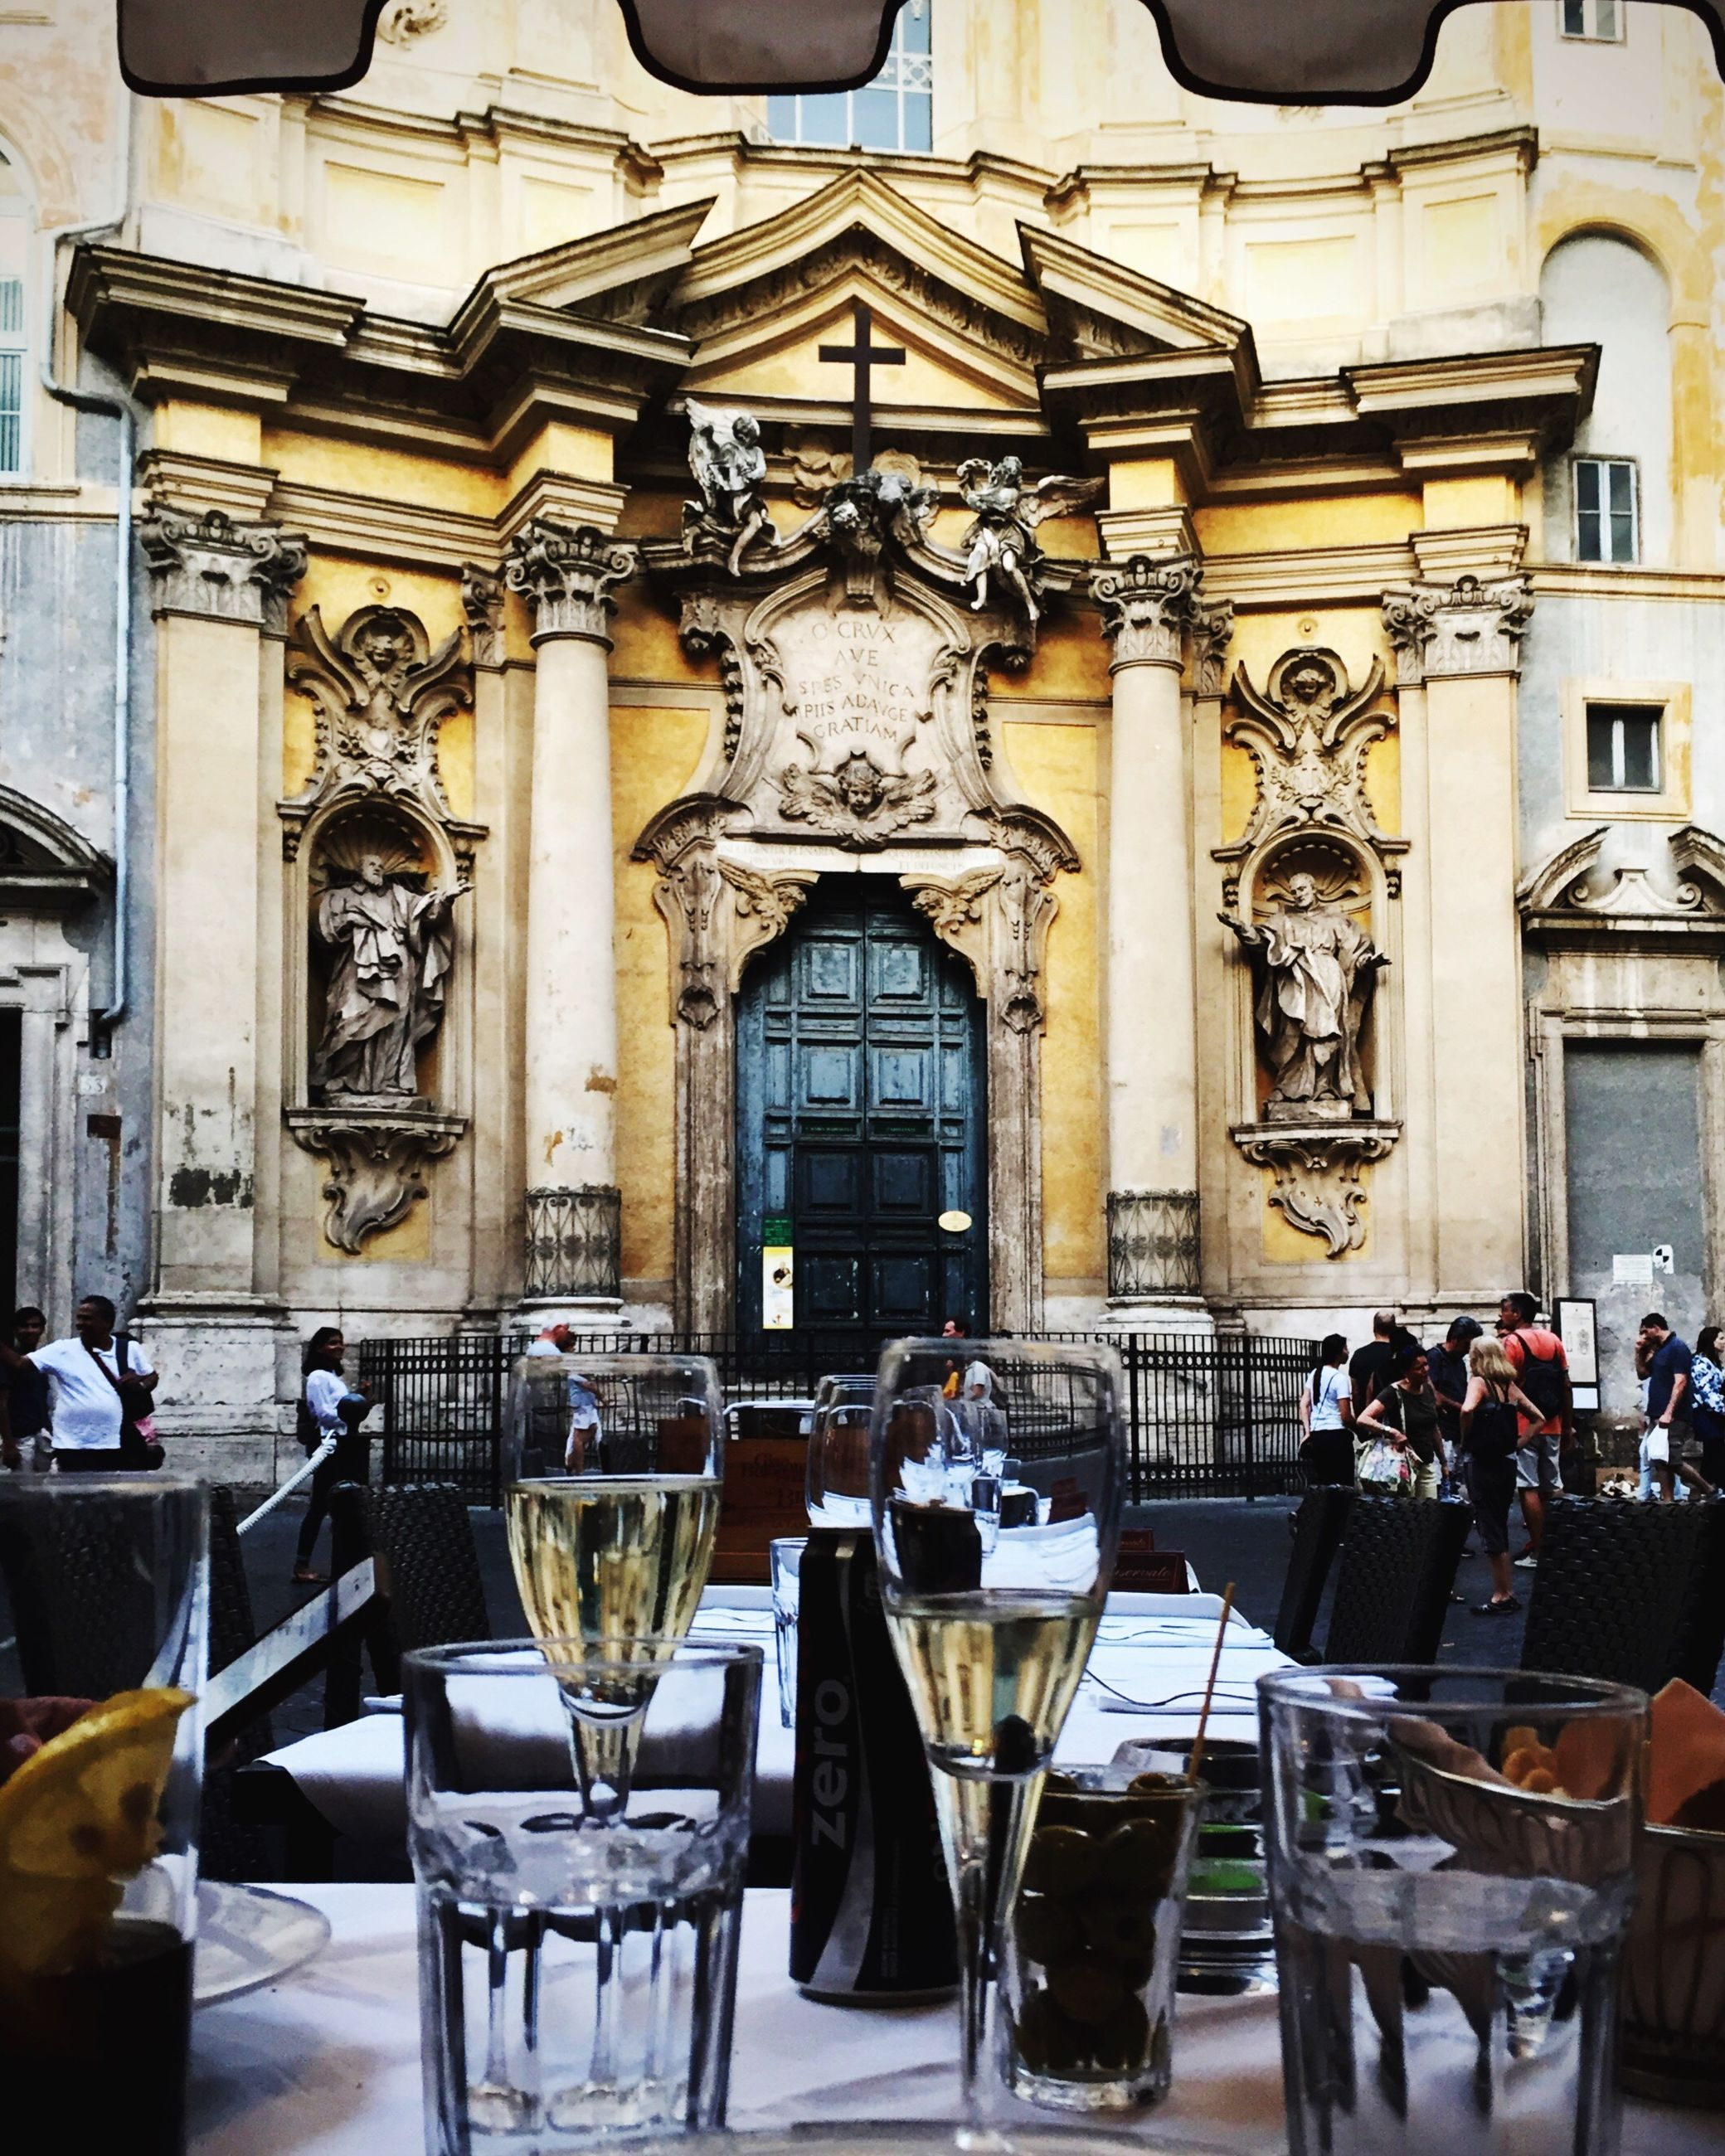 table, chair, restaurant, arrangement, architecture, dining table, place setting, group of objects, facade, history, place of worship, dining, architectural column